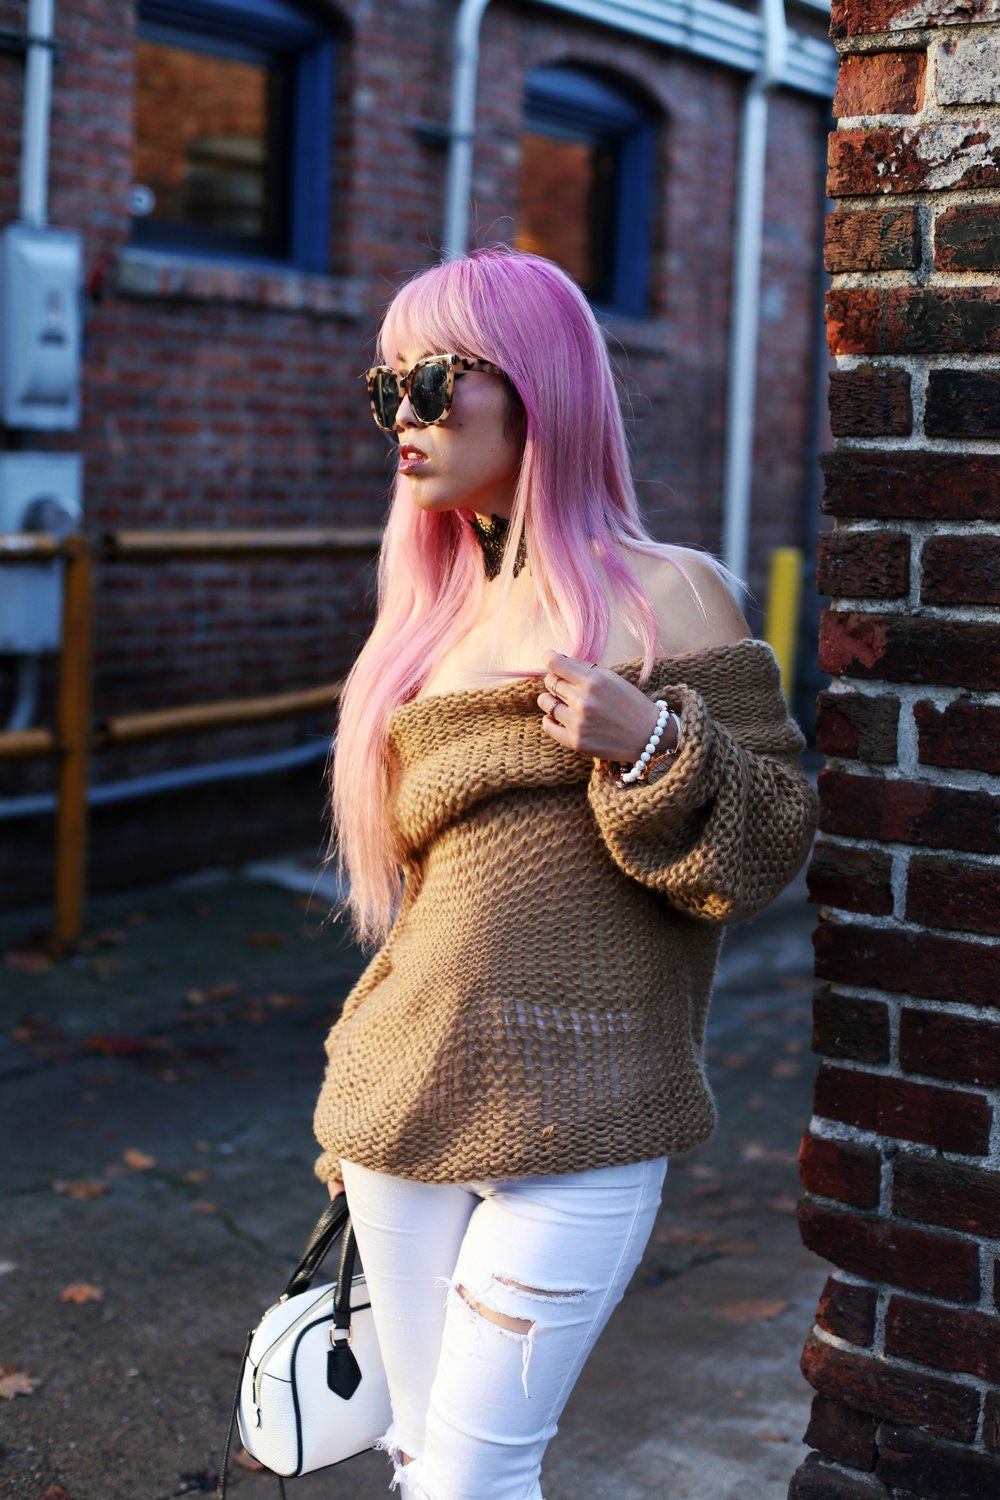 Urban Outfitters Sunglasses_Camel Off The Shoulder Sweater_TOPSHOP white jeans_ZARA Bag_ASOS Snake Skin Heels_Shop Dixi Lace Choker_Aika's Love Closet_Seattle Fashion Blogger_Japanese_Pink Hair_Colored Hair 4